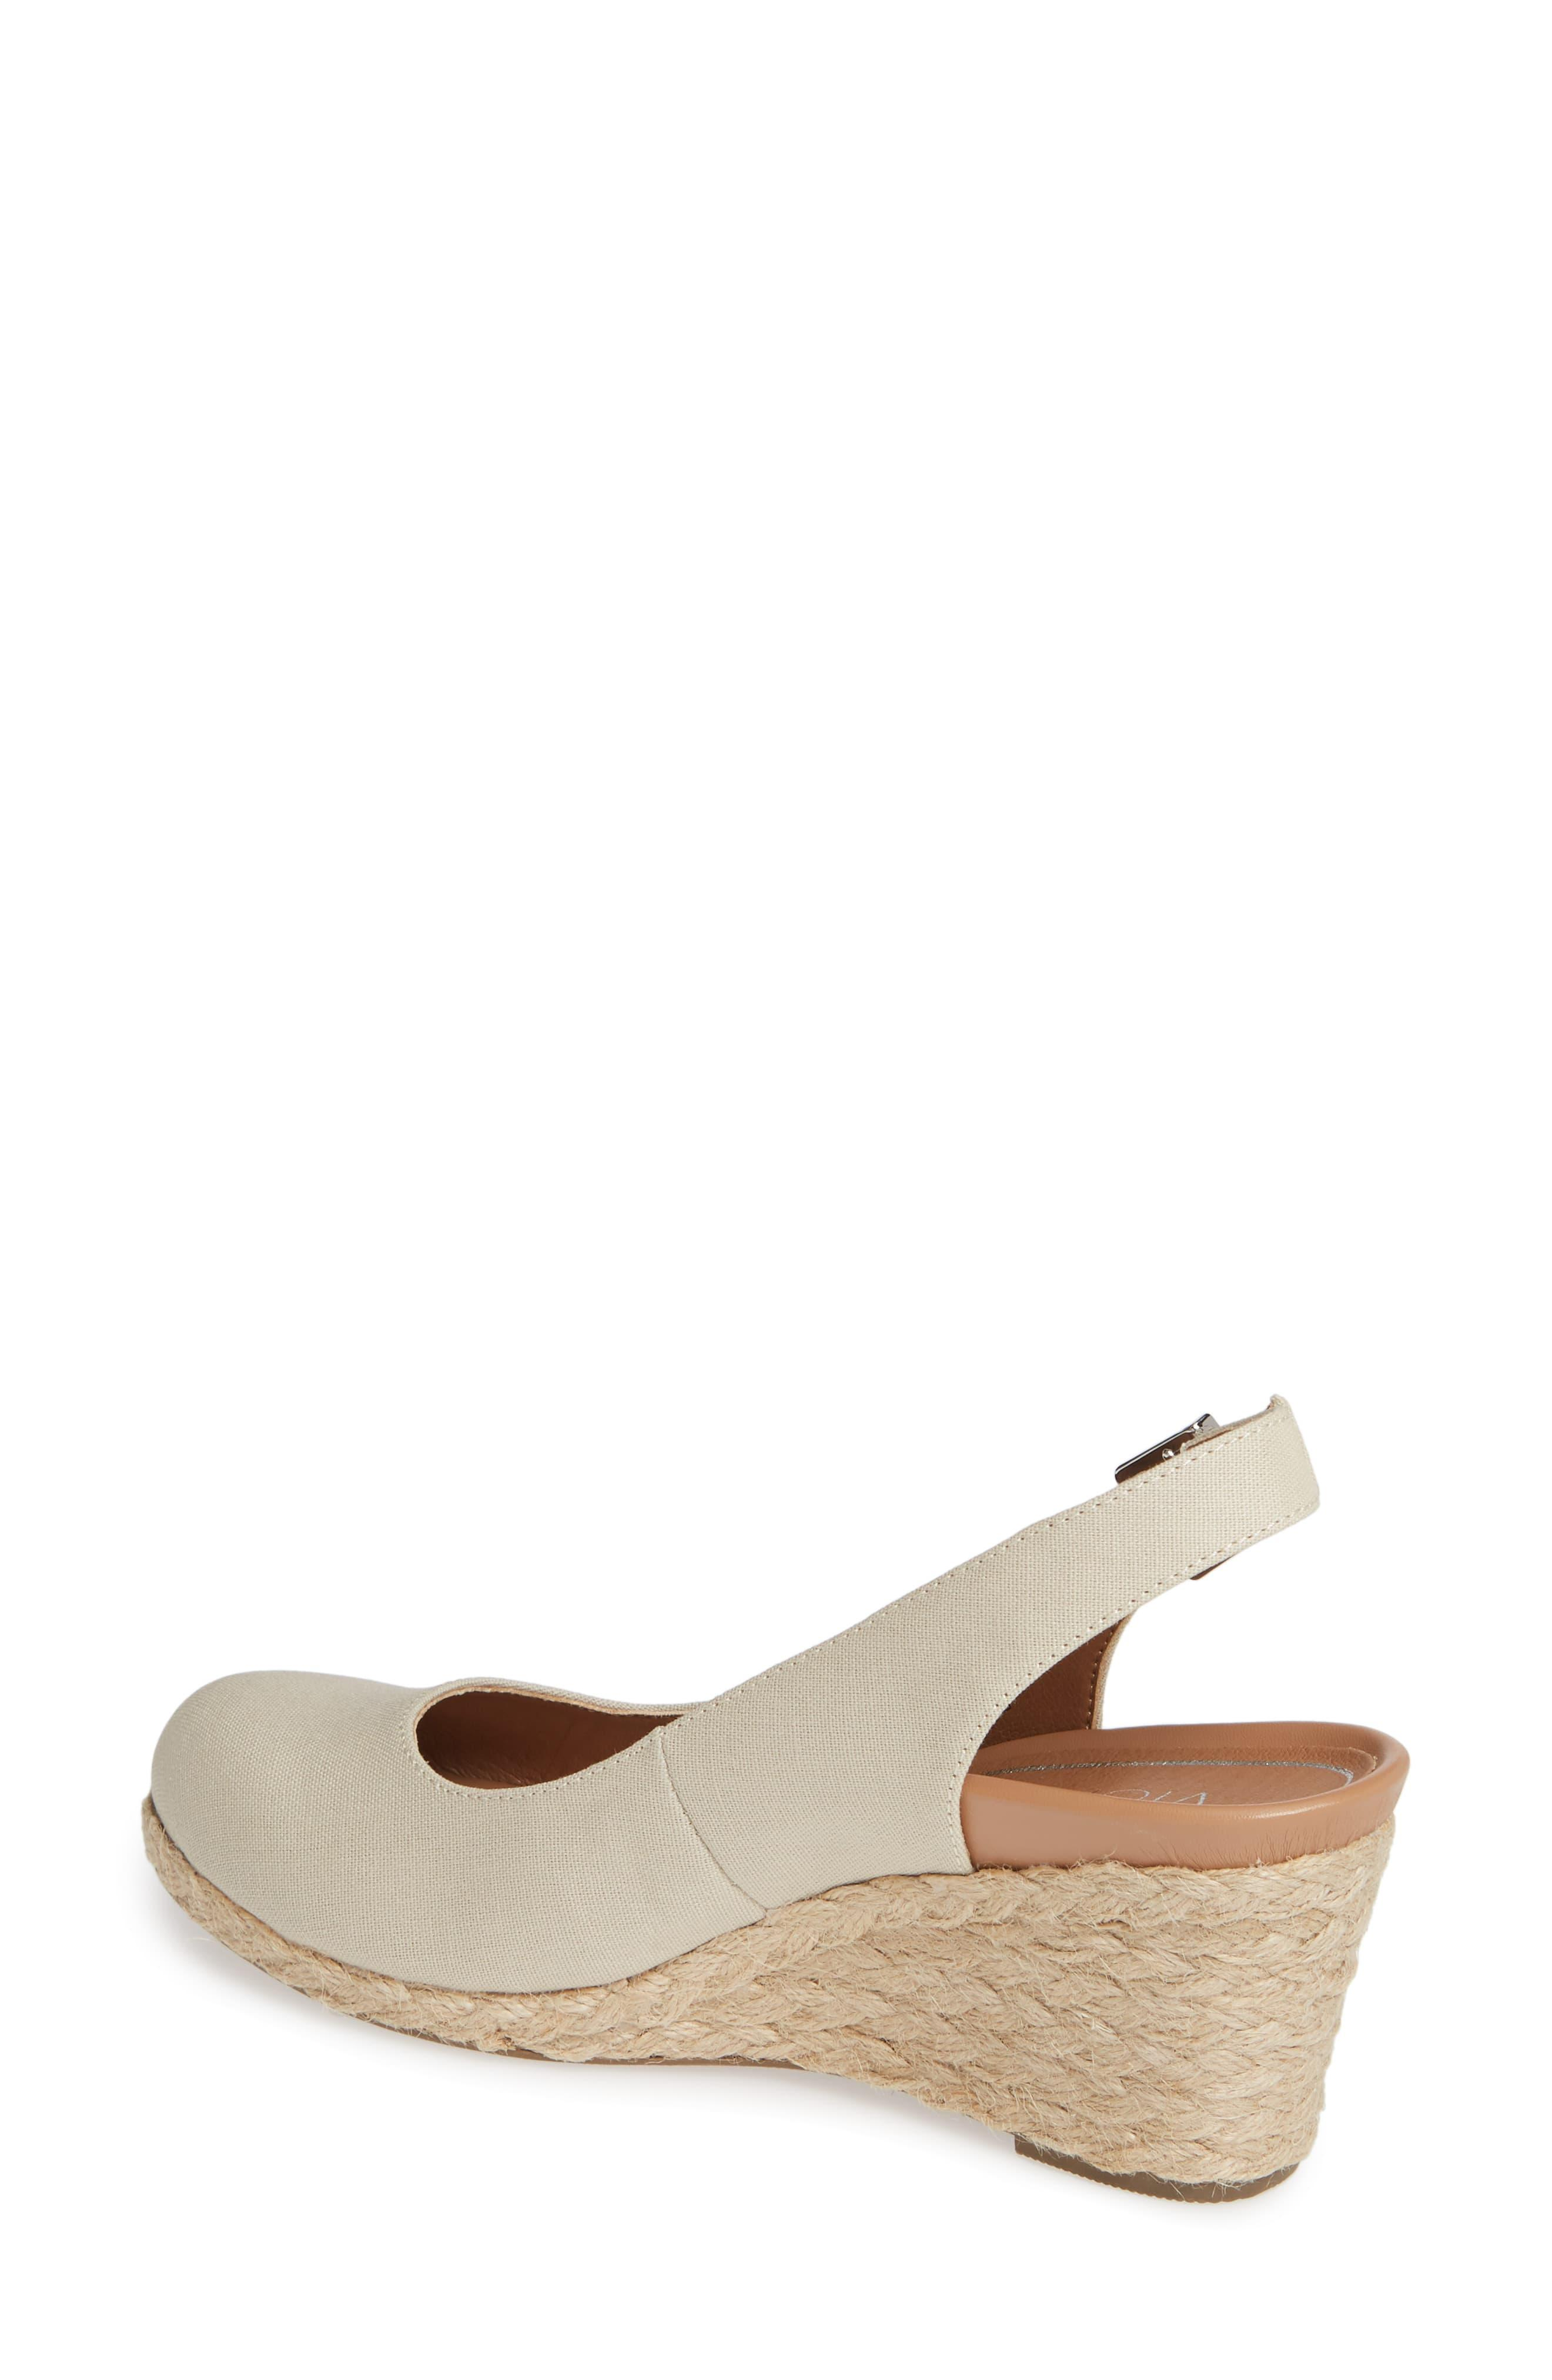 58c02f78e88c Vionic - Multicolor Coralina Orthaheel Espadrille Wedge Slingback Sandal -  Lyst. View fullscreen